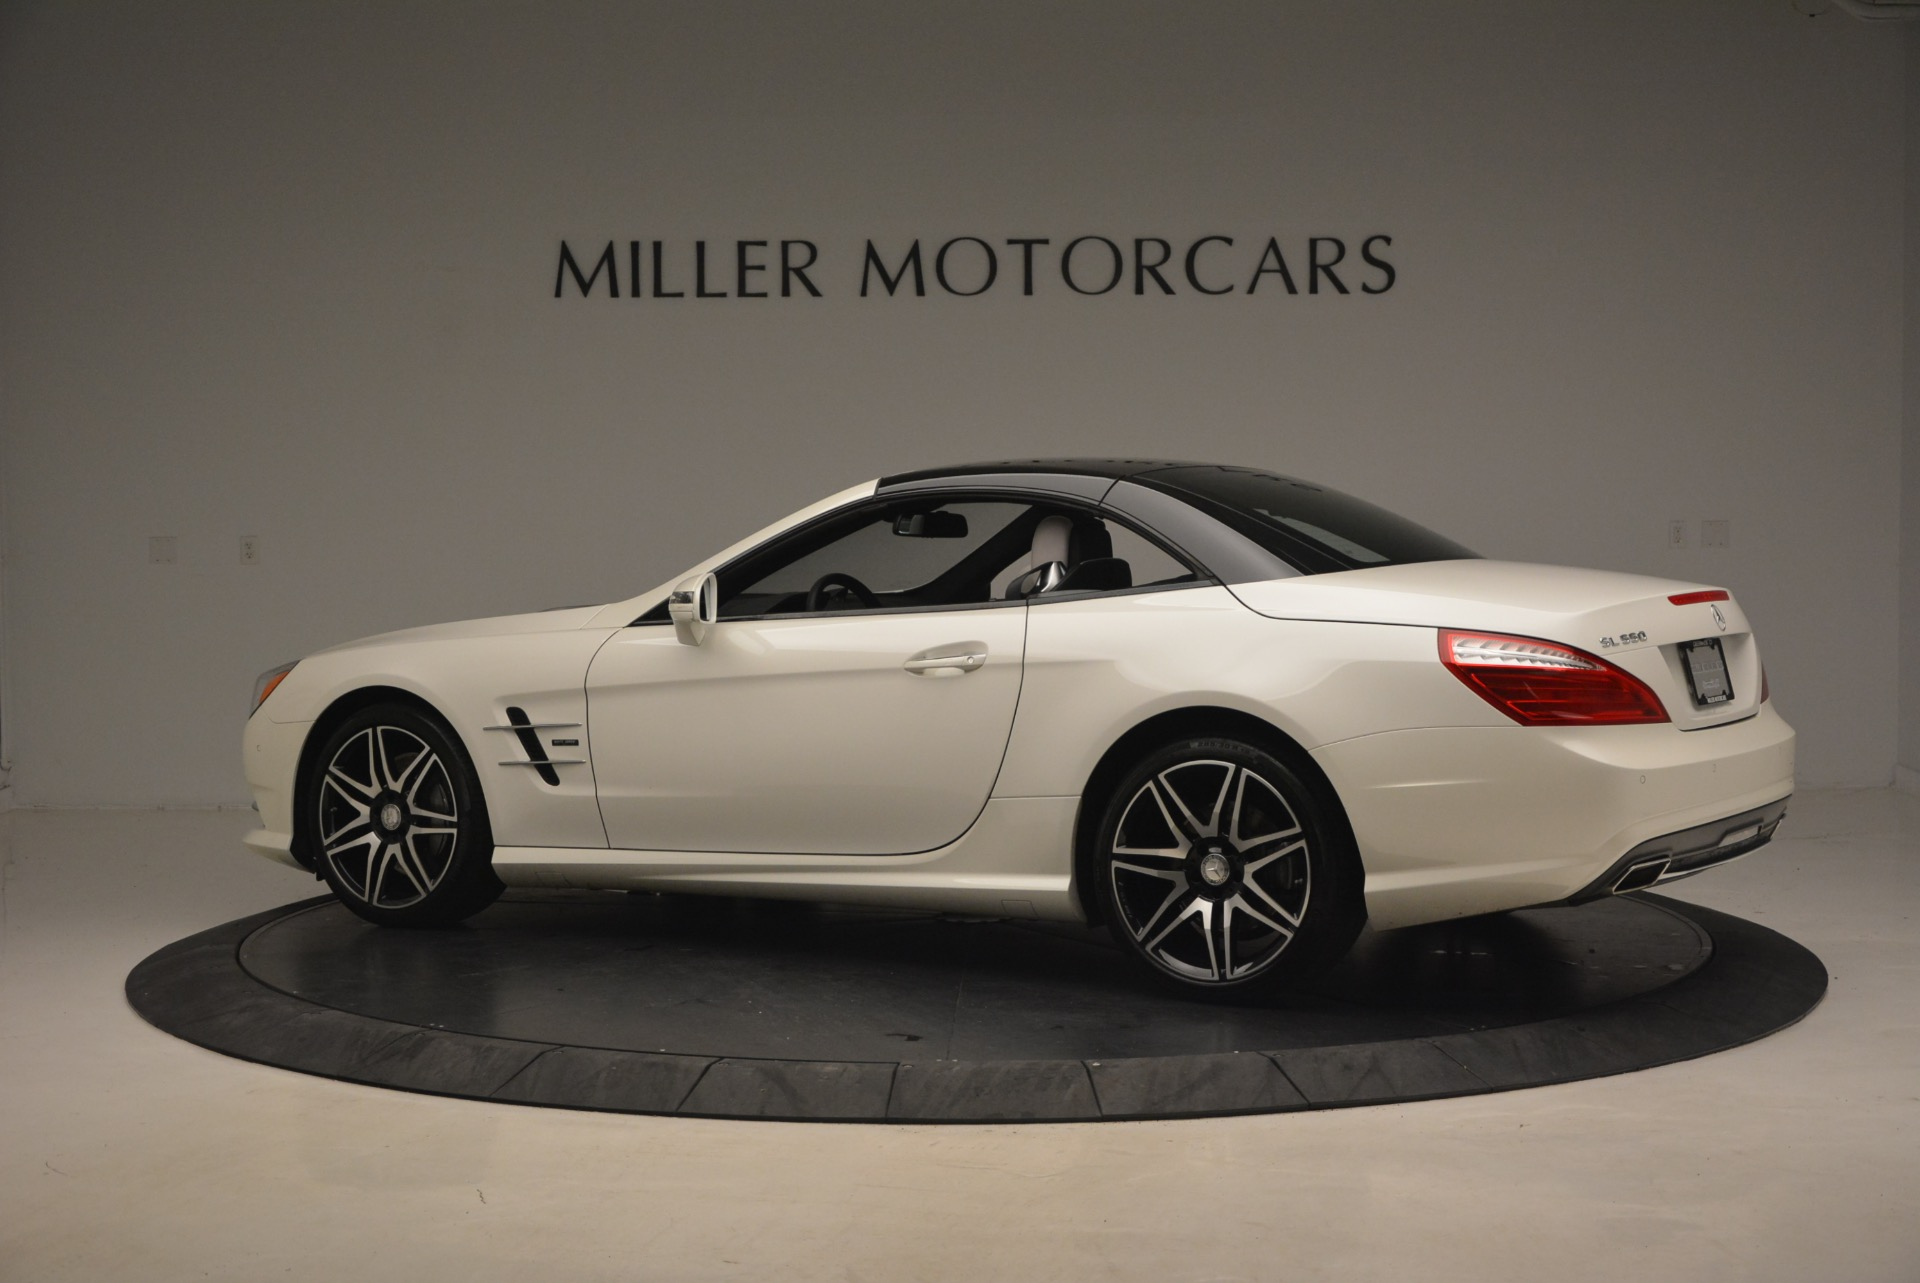 Used 2015 Mercedes Benz SL-Class SL 550 For Sale In Greenwich, CT 1261_p18